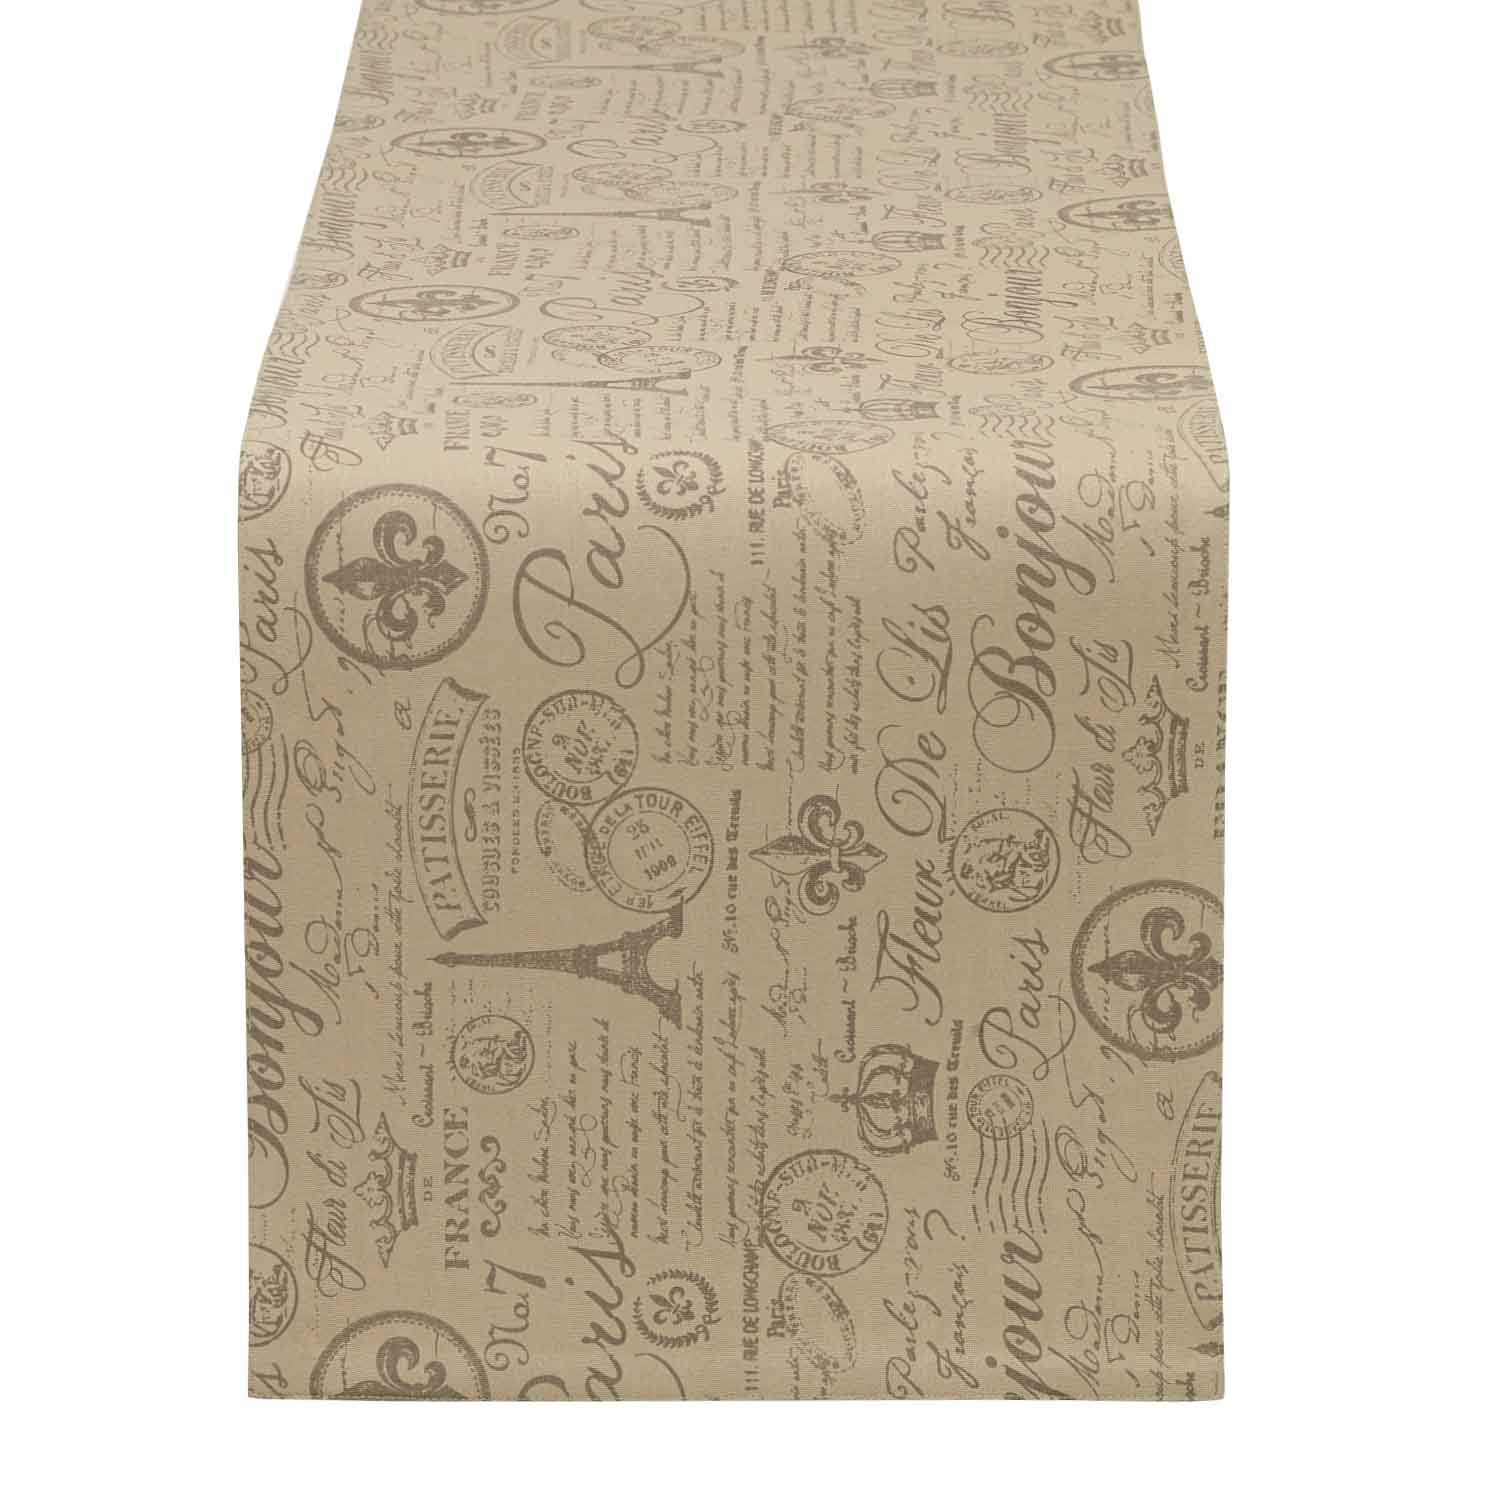 DII COSD35169 100% Cotton, Machine Washable, Everyday French Stripe Kitchen Table Runner for Dinner Parties, Events, Décor, 14x72 Flourish